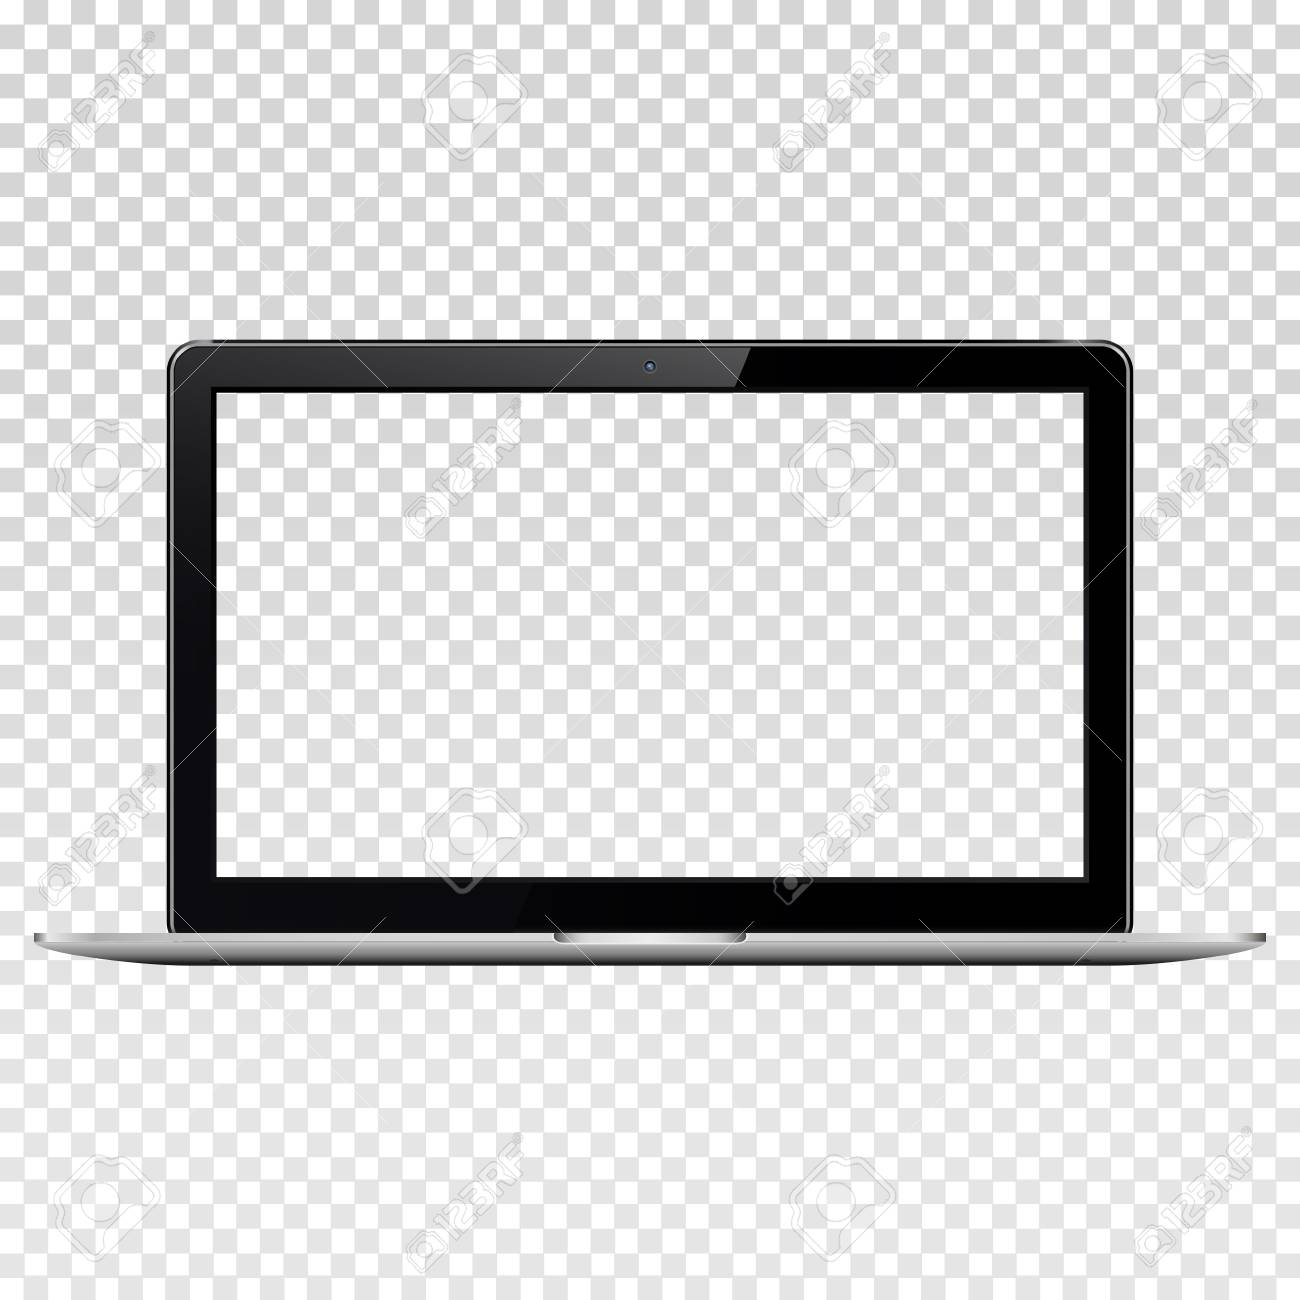 Laptop with transparent screen, isolated on transparent background. - 104003700